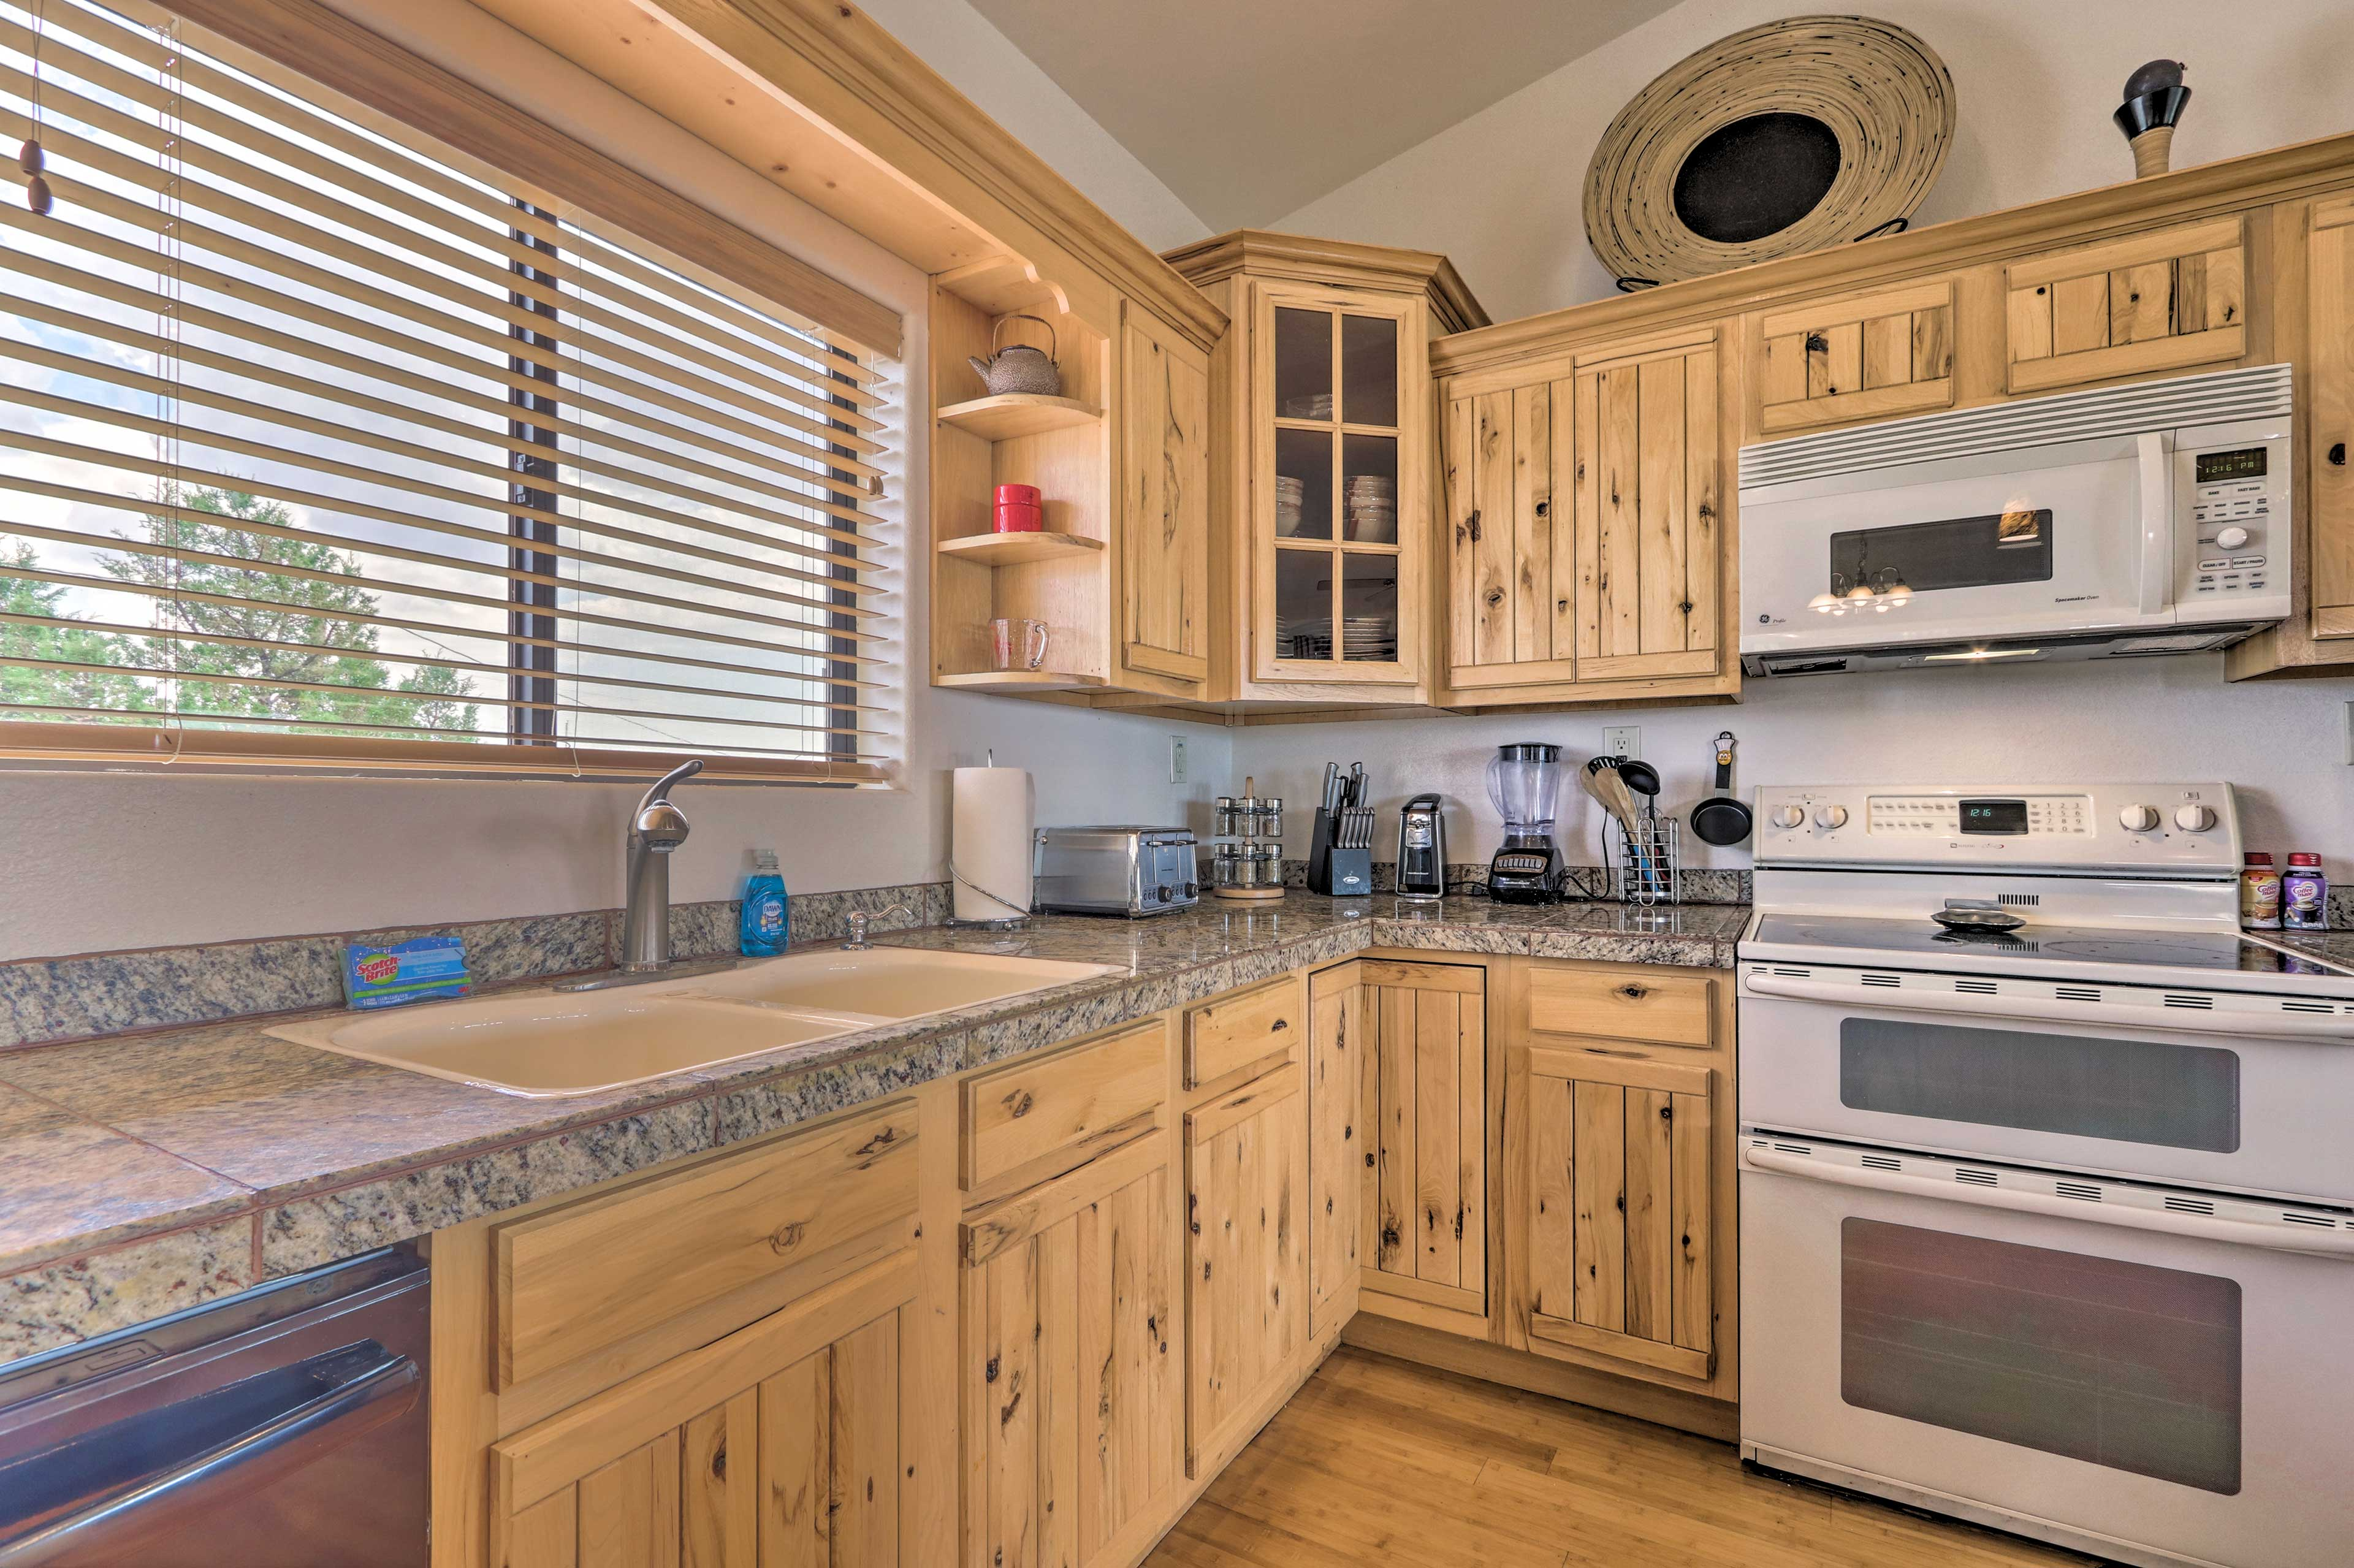 Granite countertops add a touch of luxury to your cooking experience.